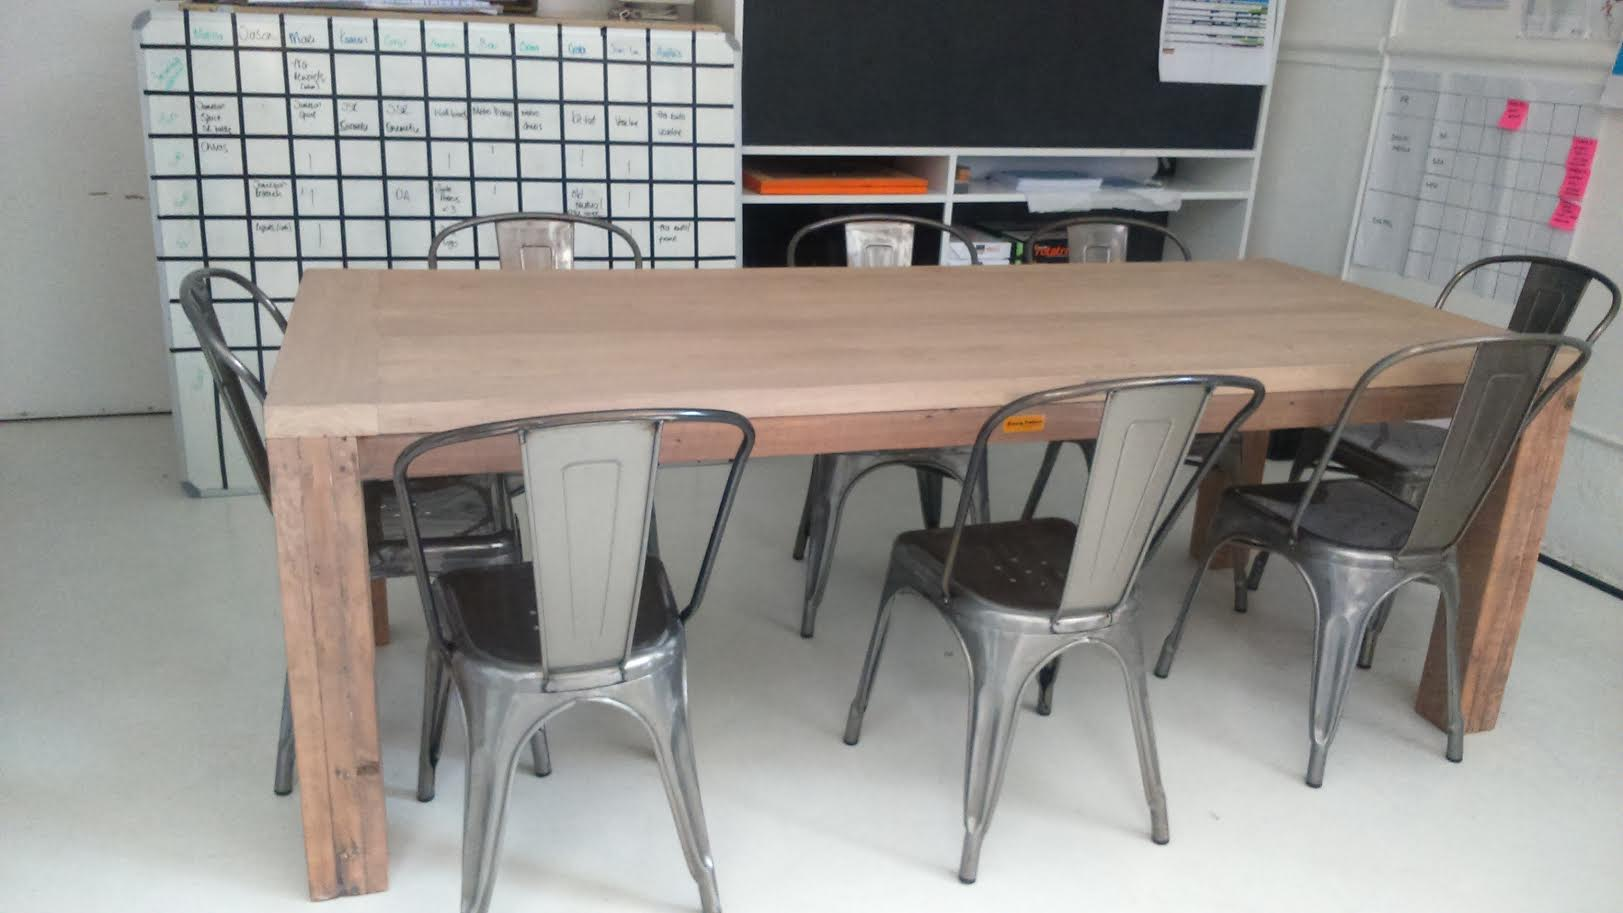 Recycled meeting room table.